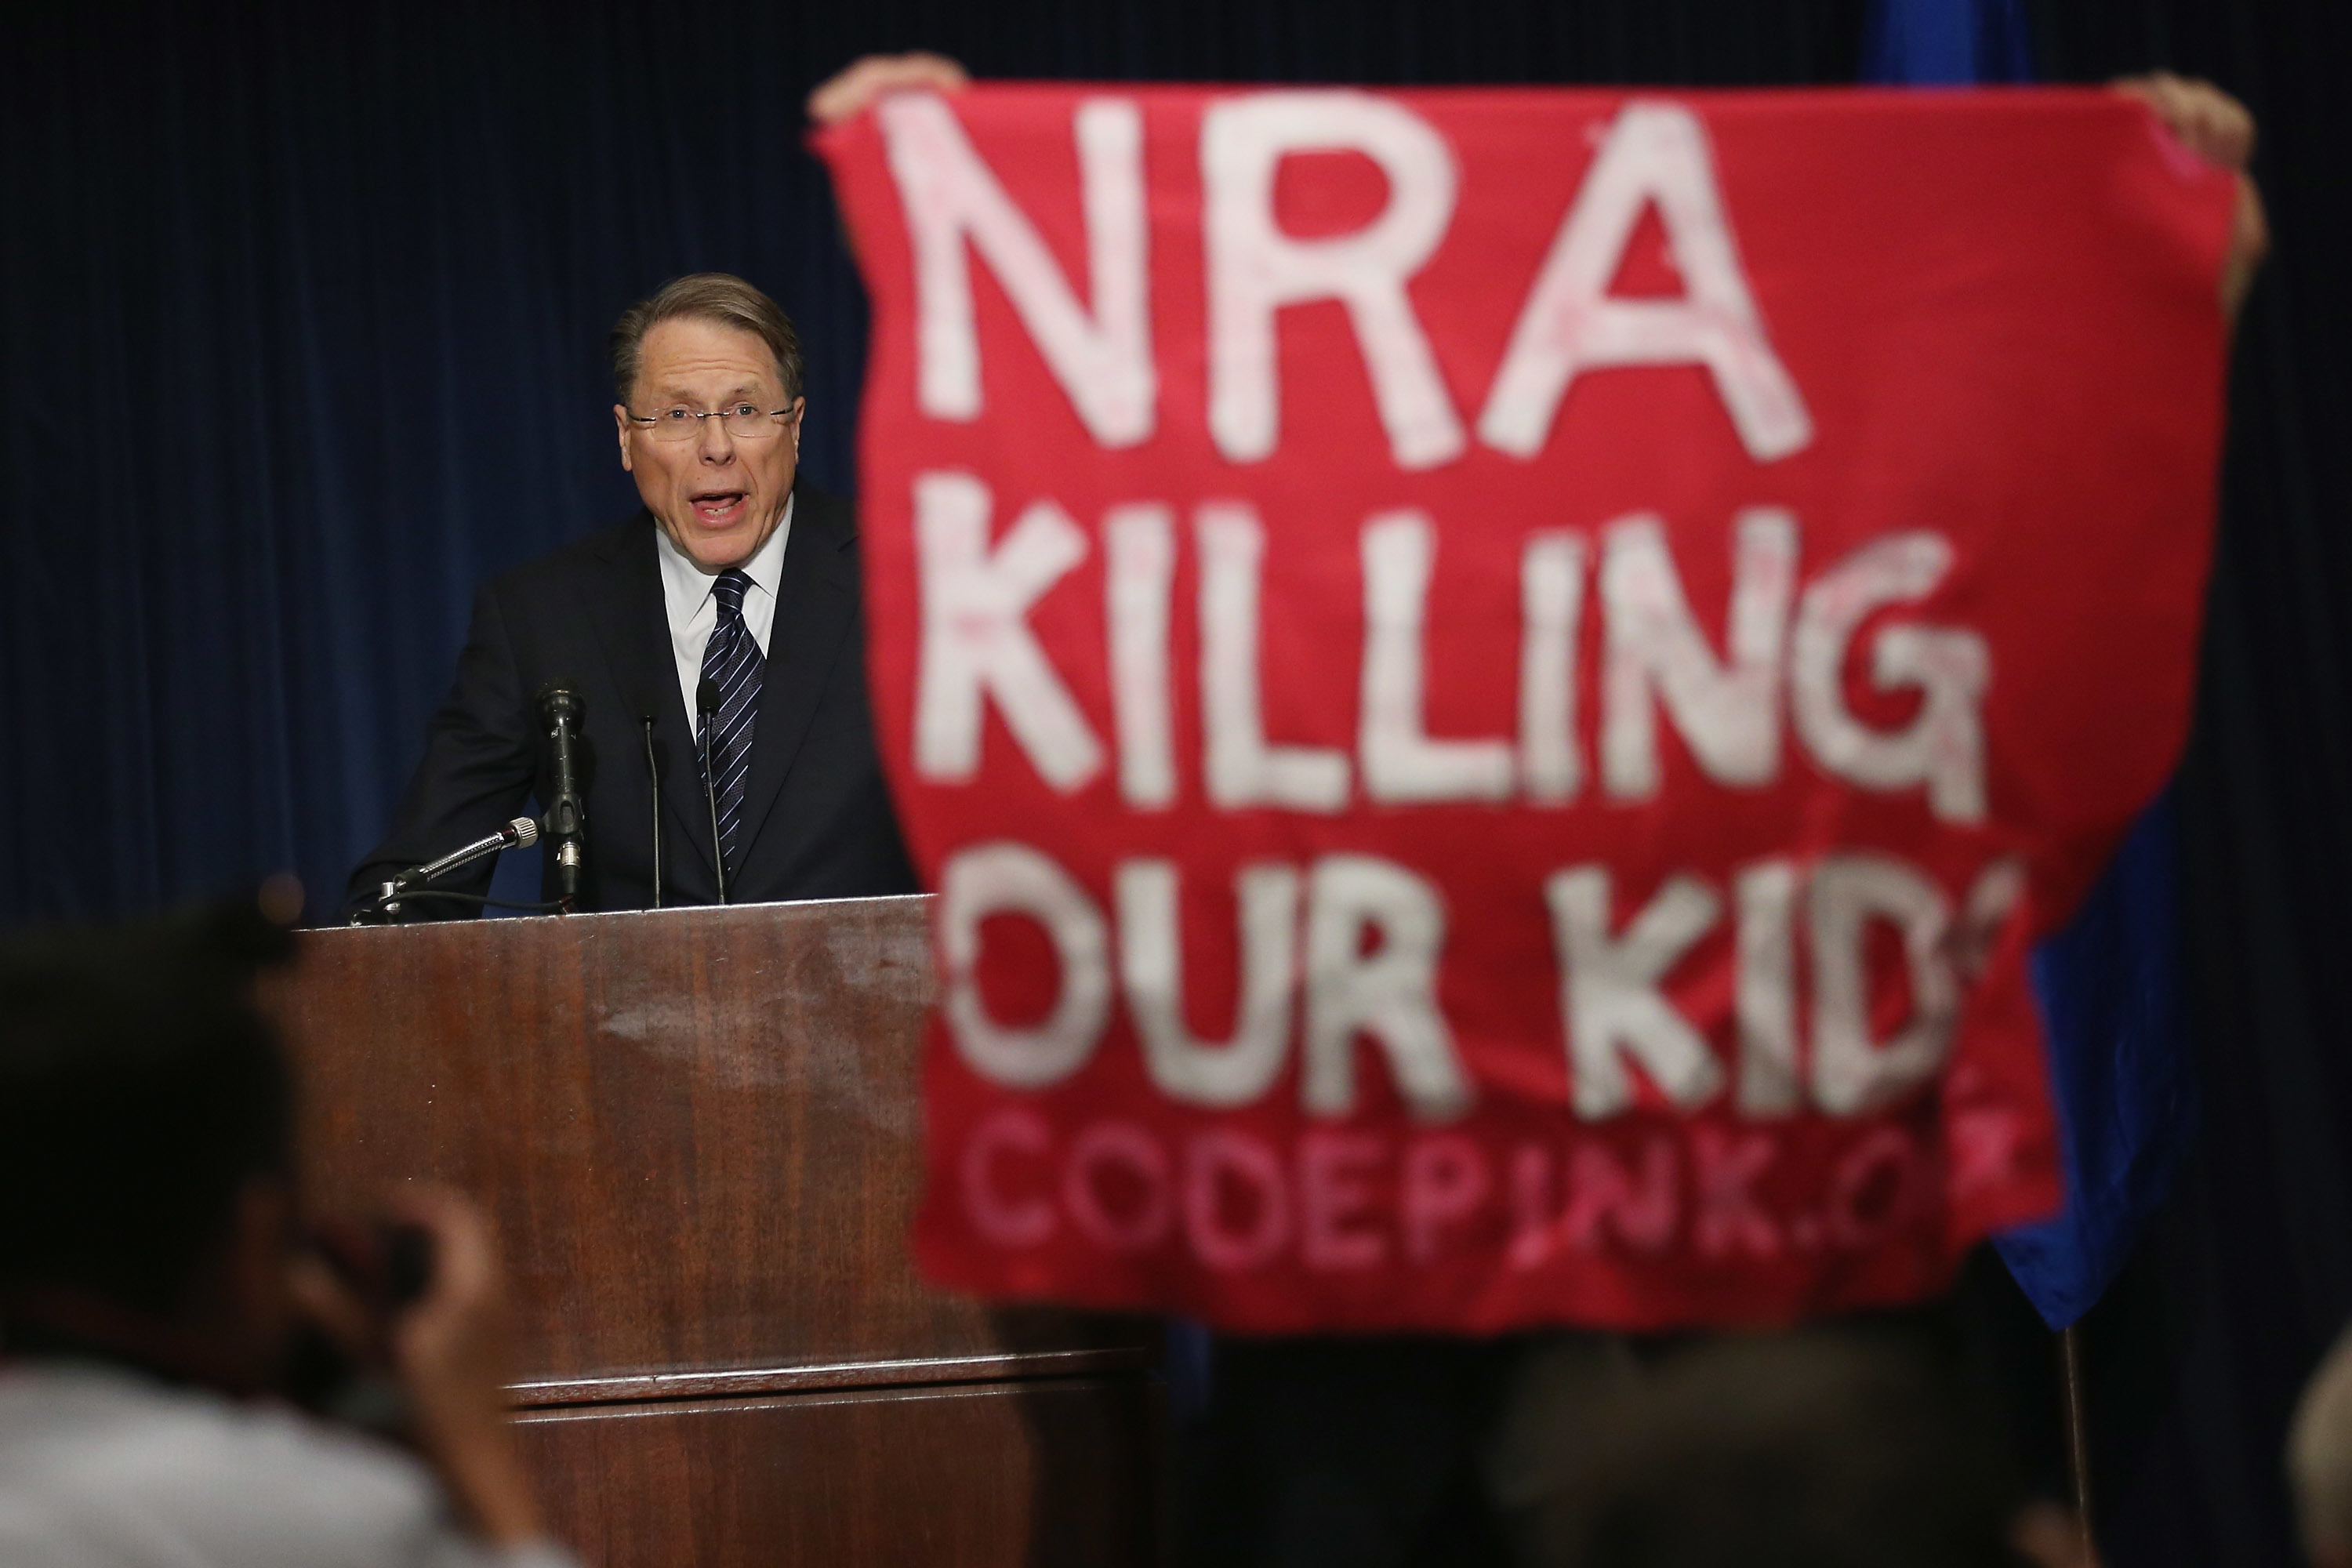 National Rifle Association president Wayne La Pierre in December 2012 is interrupted by an anti-gun activist during his first public appearance following the Sandy Hook Elementary School shooting.